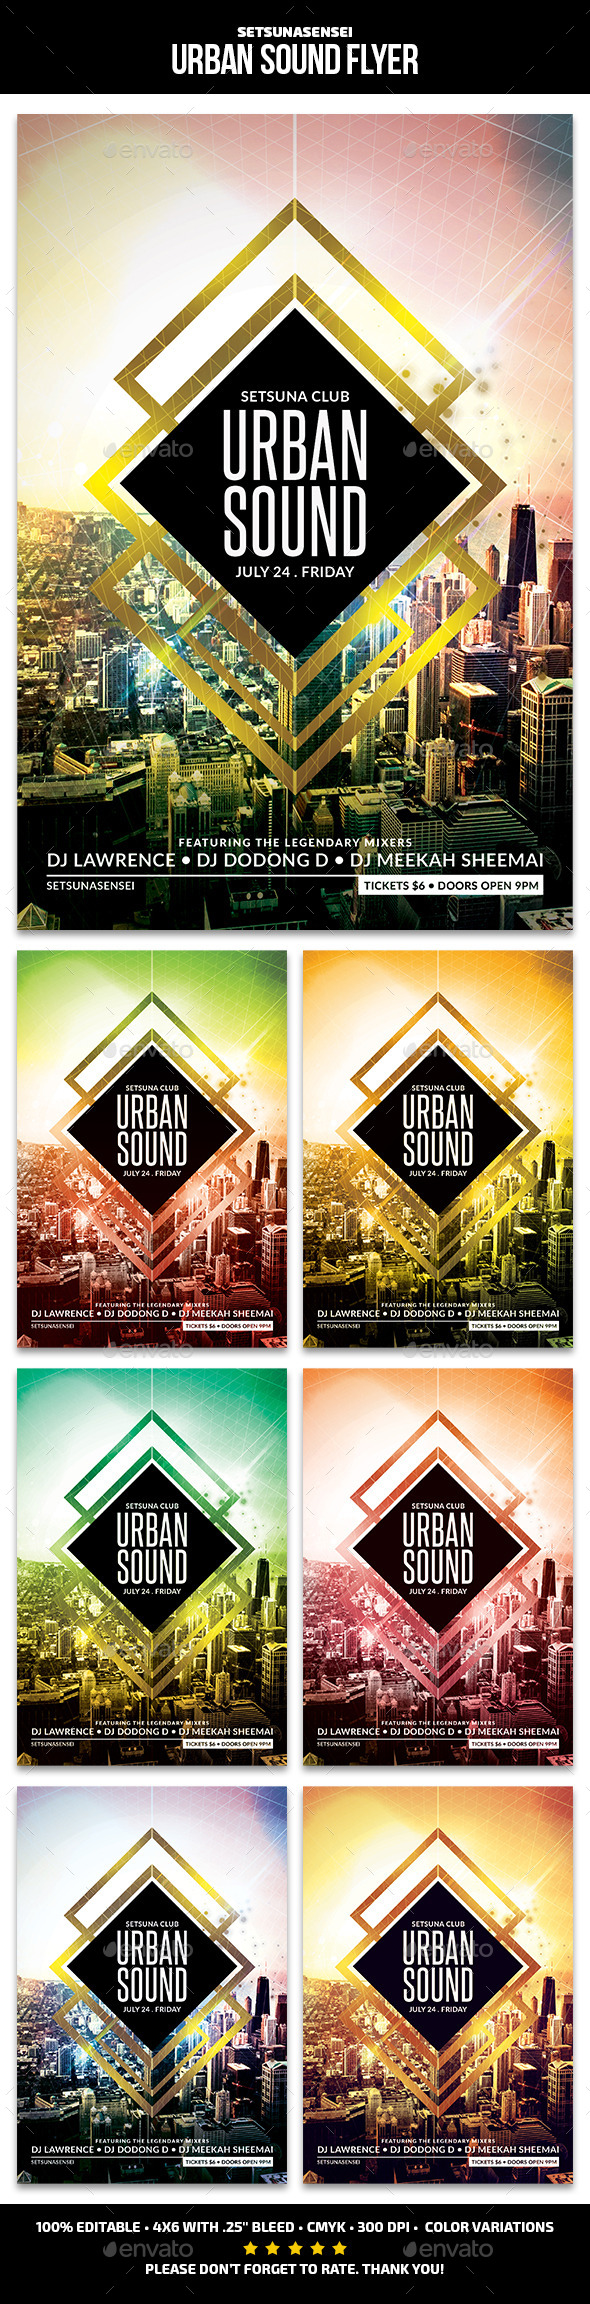 GraphicRiver Urban Sound Flyer 11587233